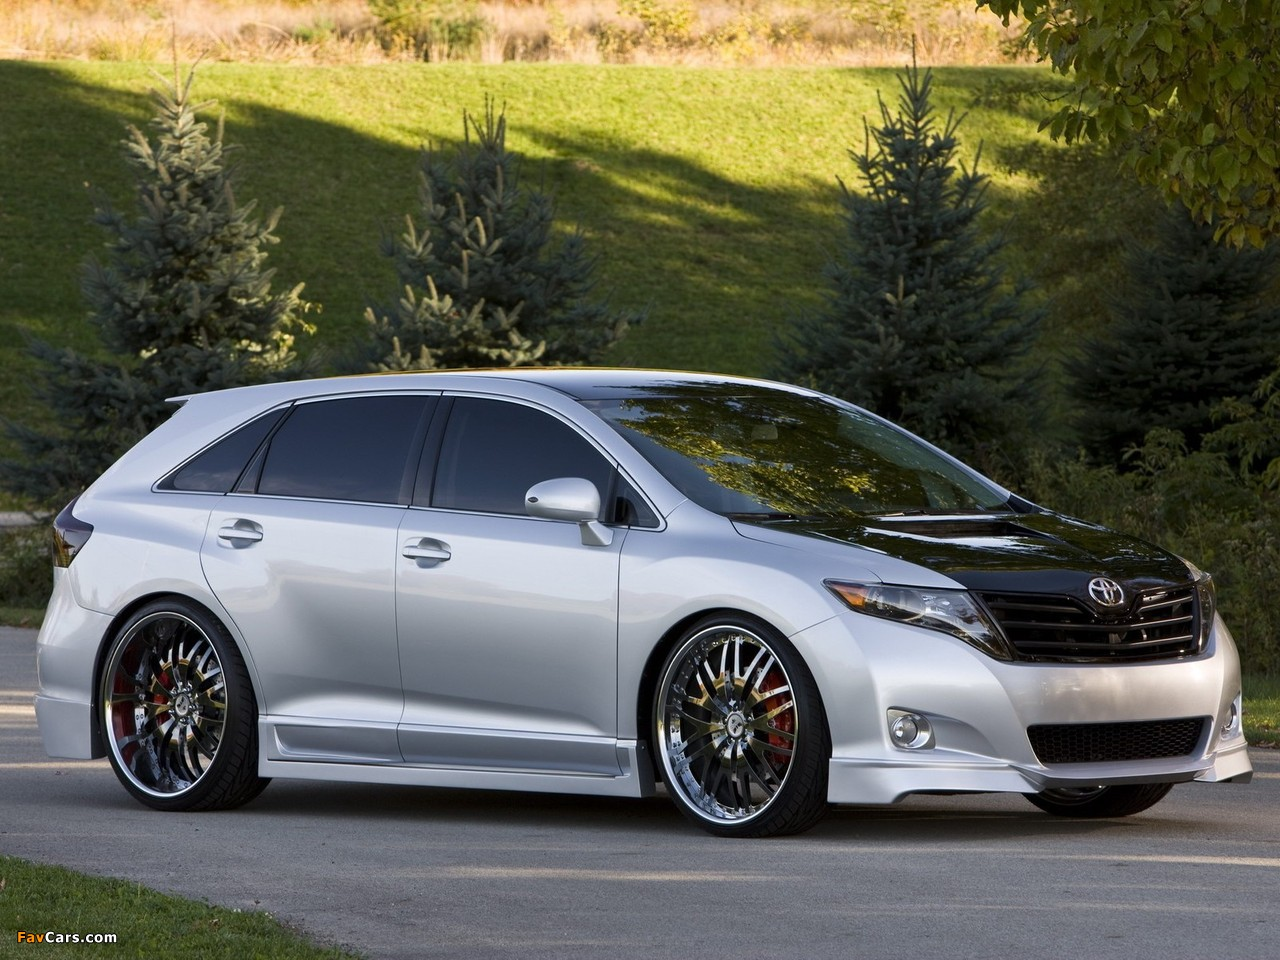 TRD Toyota Venza Sportlux Street Image Concept 2008 pictures (1280x960 ...